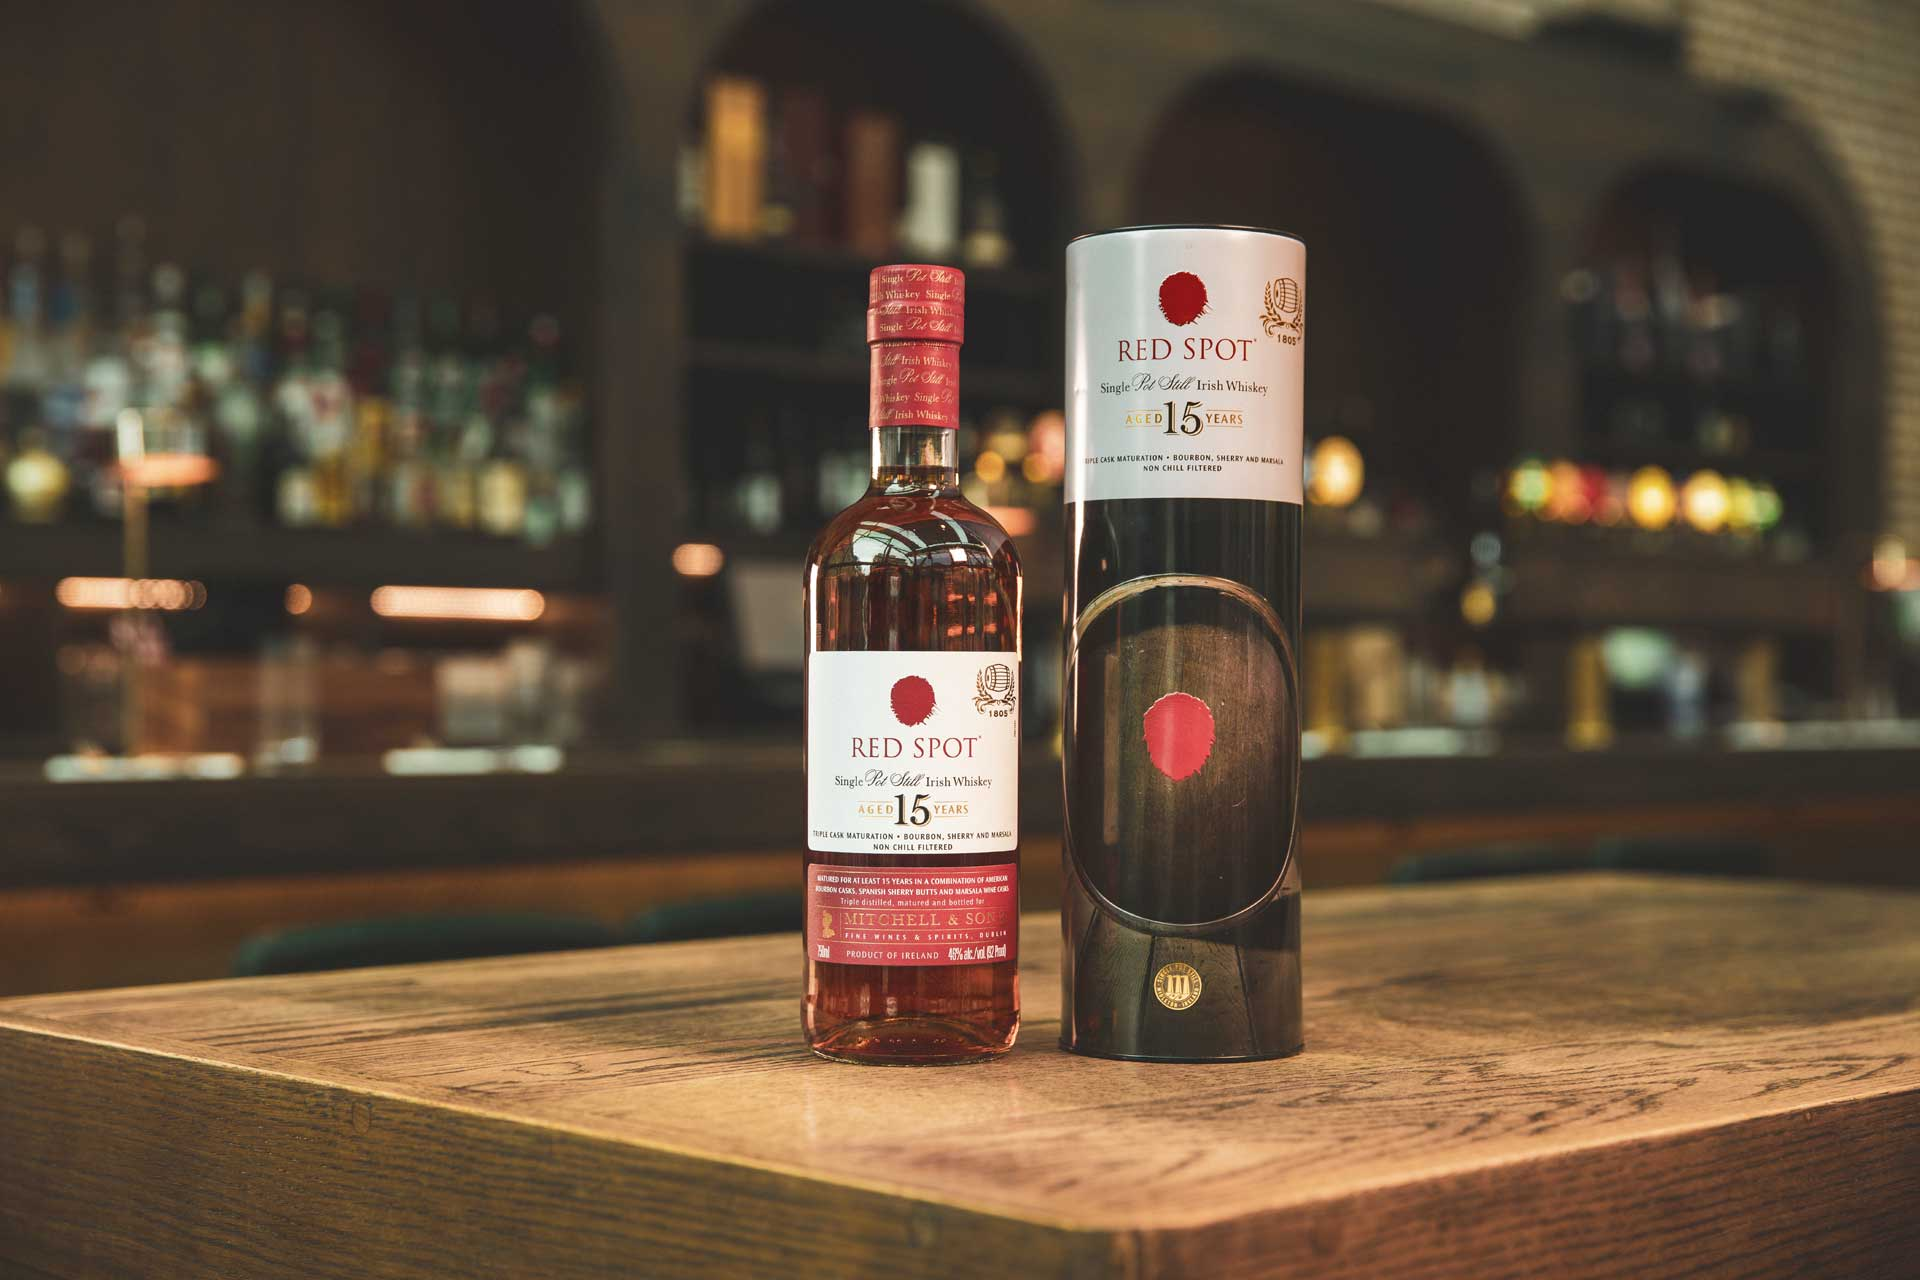 Lost Irish whiskey Red Spot has been revived for the 21st century